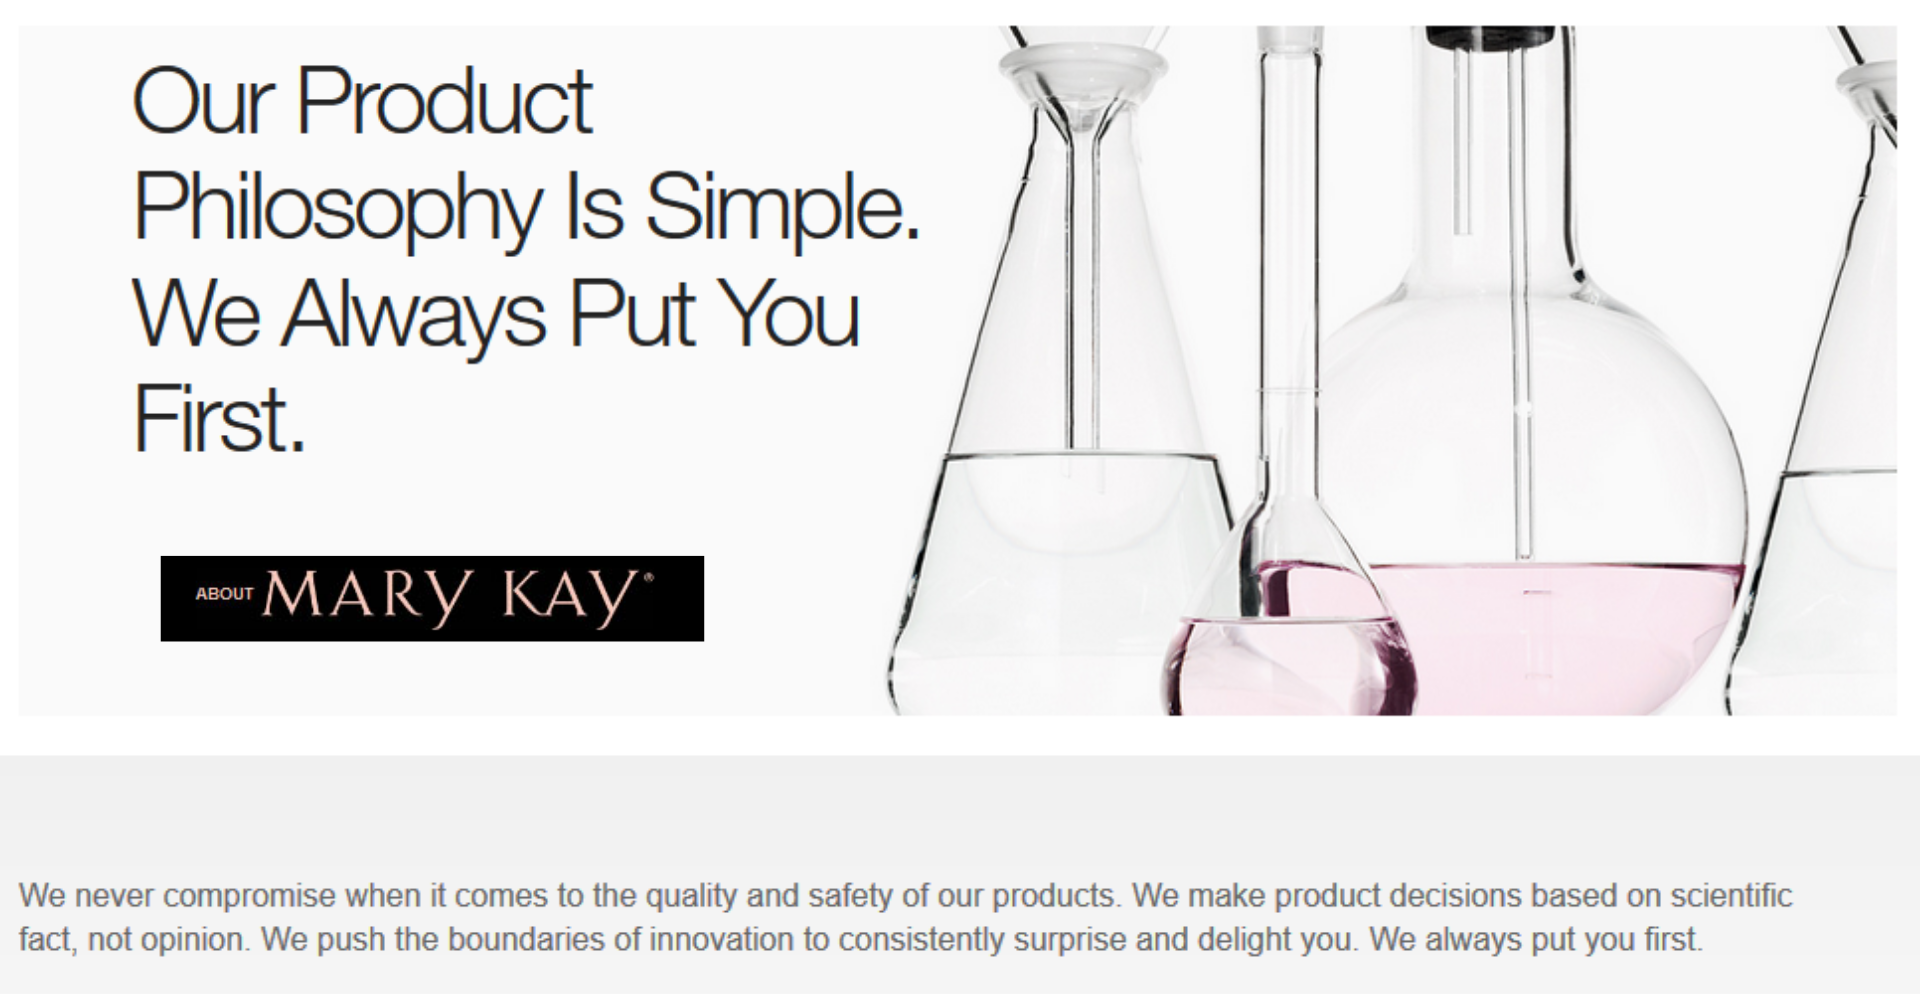 About Mary Kay